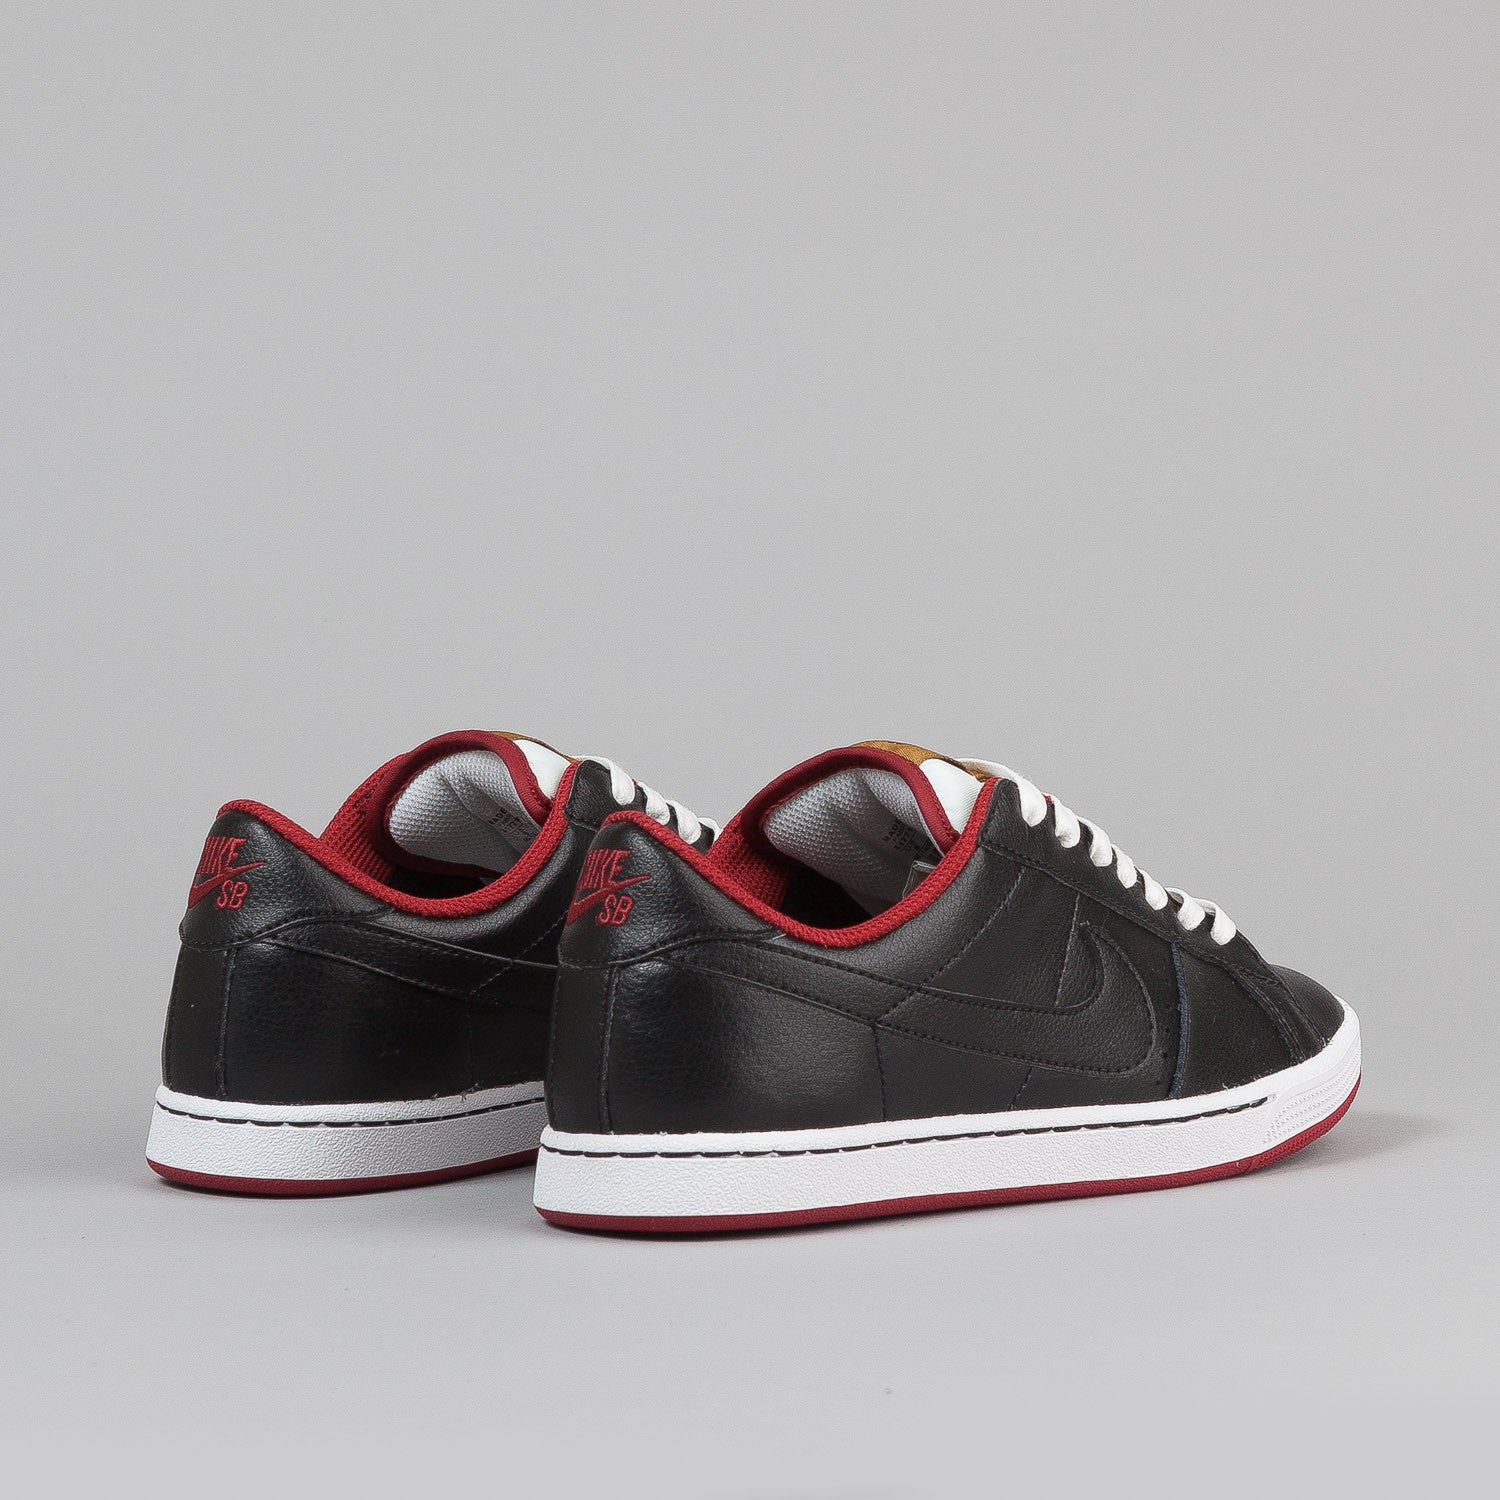 Nike SB Classic Shoes - Black / Black